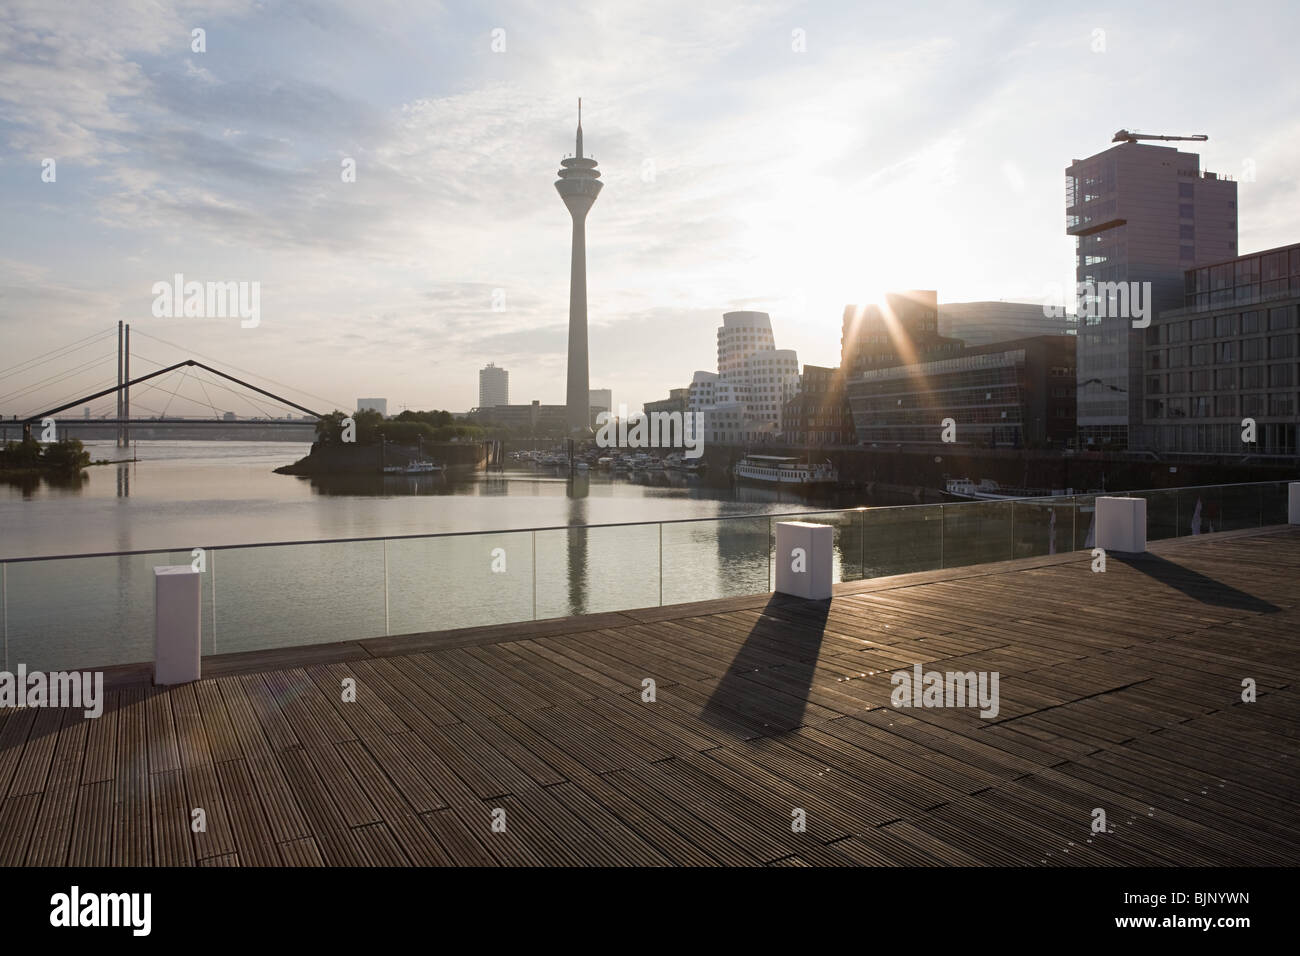 Dusseldorf media harbour - Stock Image